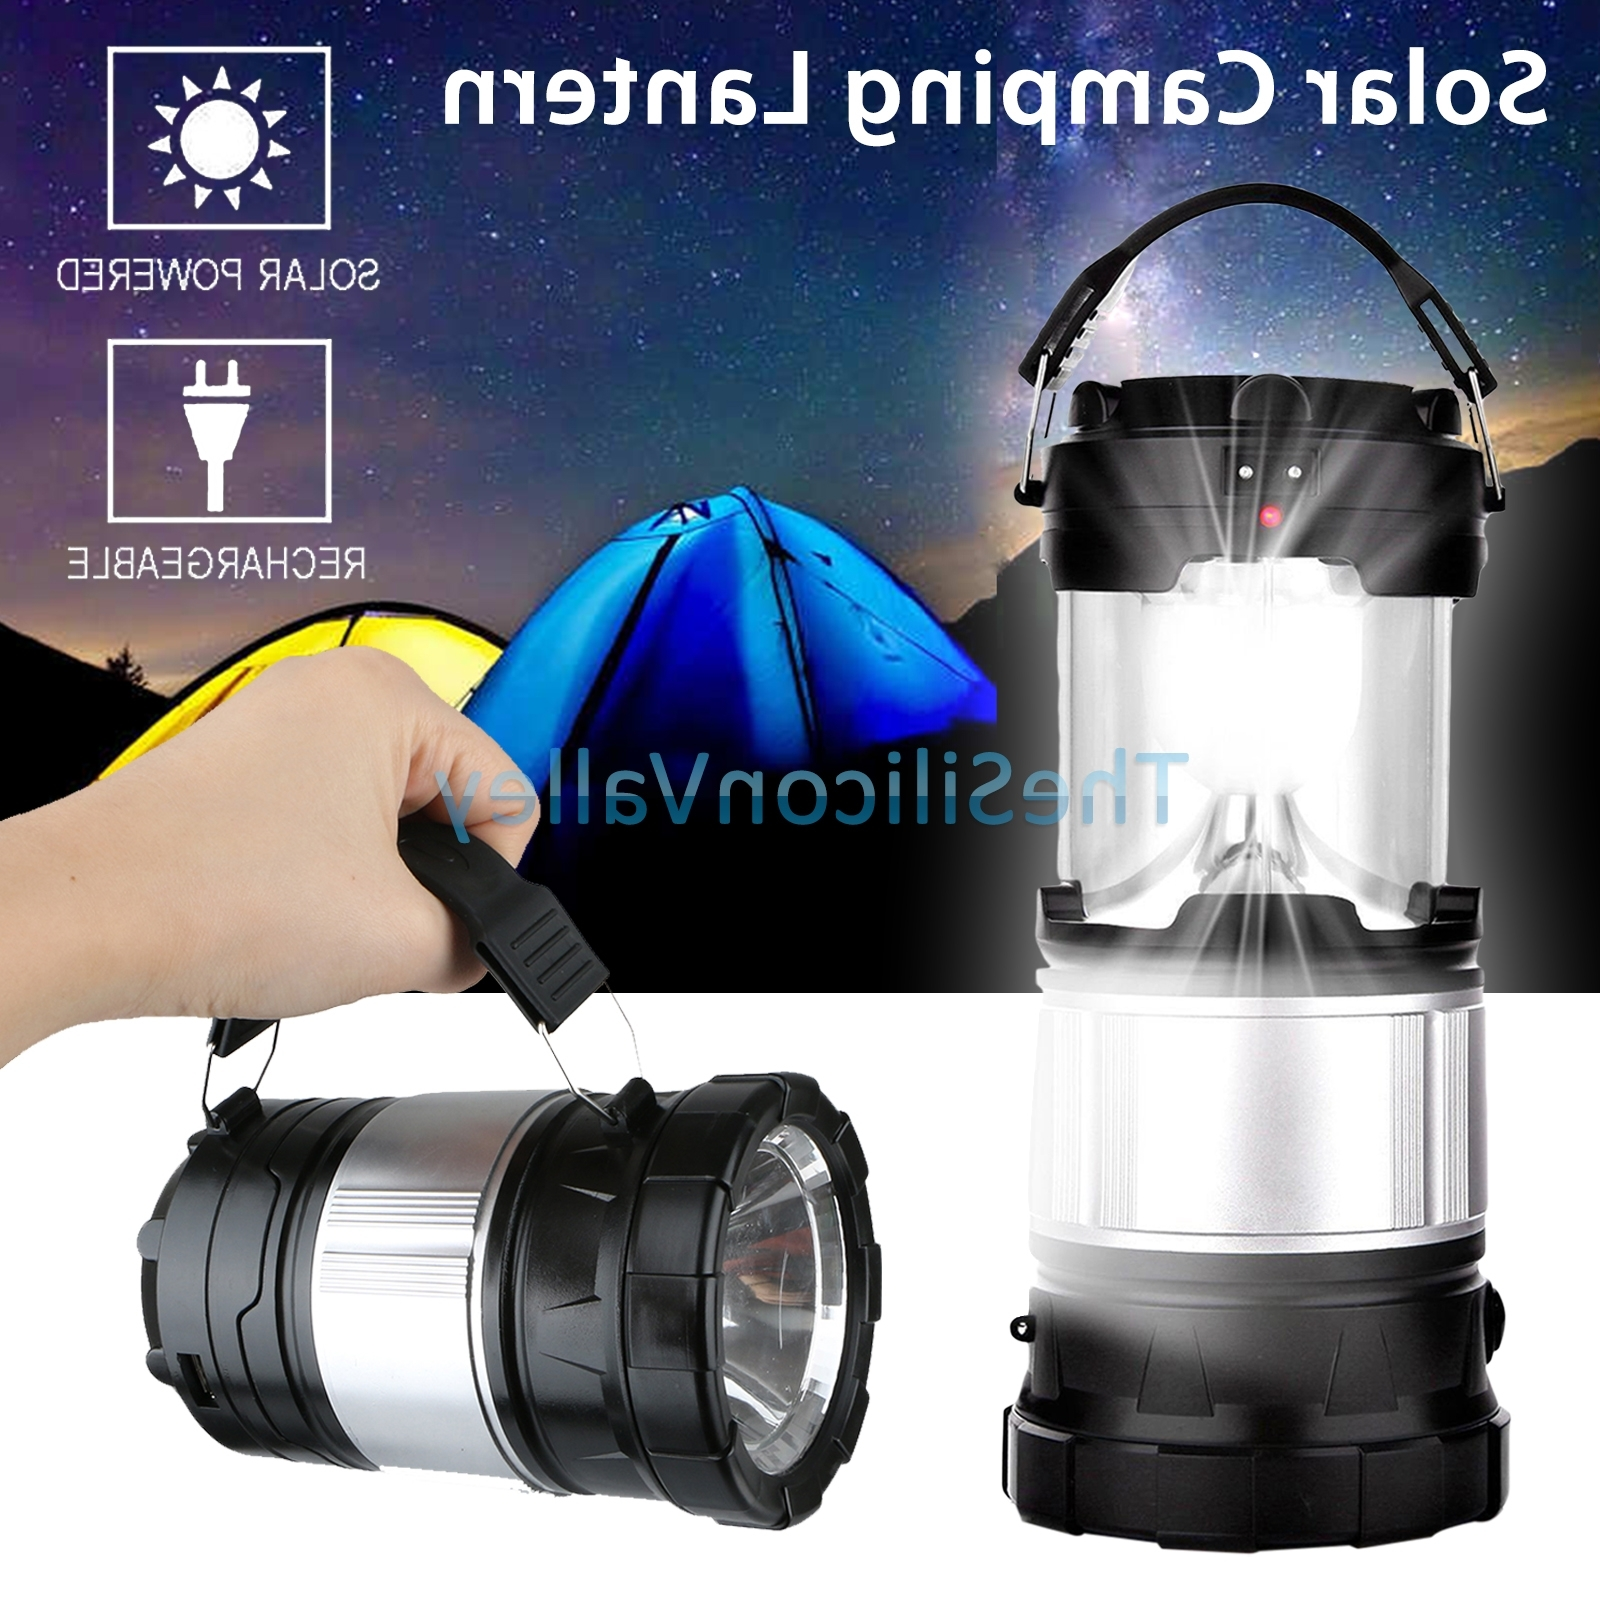 2018 Solar Camping Lantern Lamp Portable Outdoor Rechargeable Led Tent Regarding Outdoor Rechargeable Lanterns (Gallery 10 of 20)